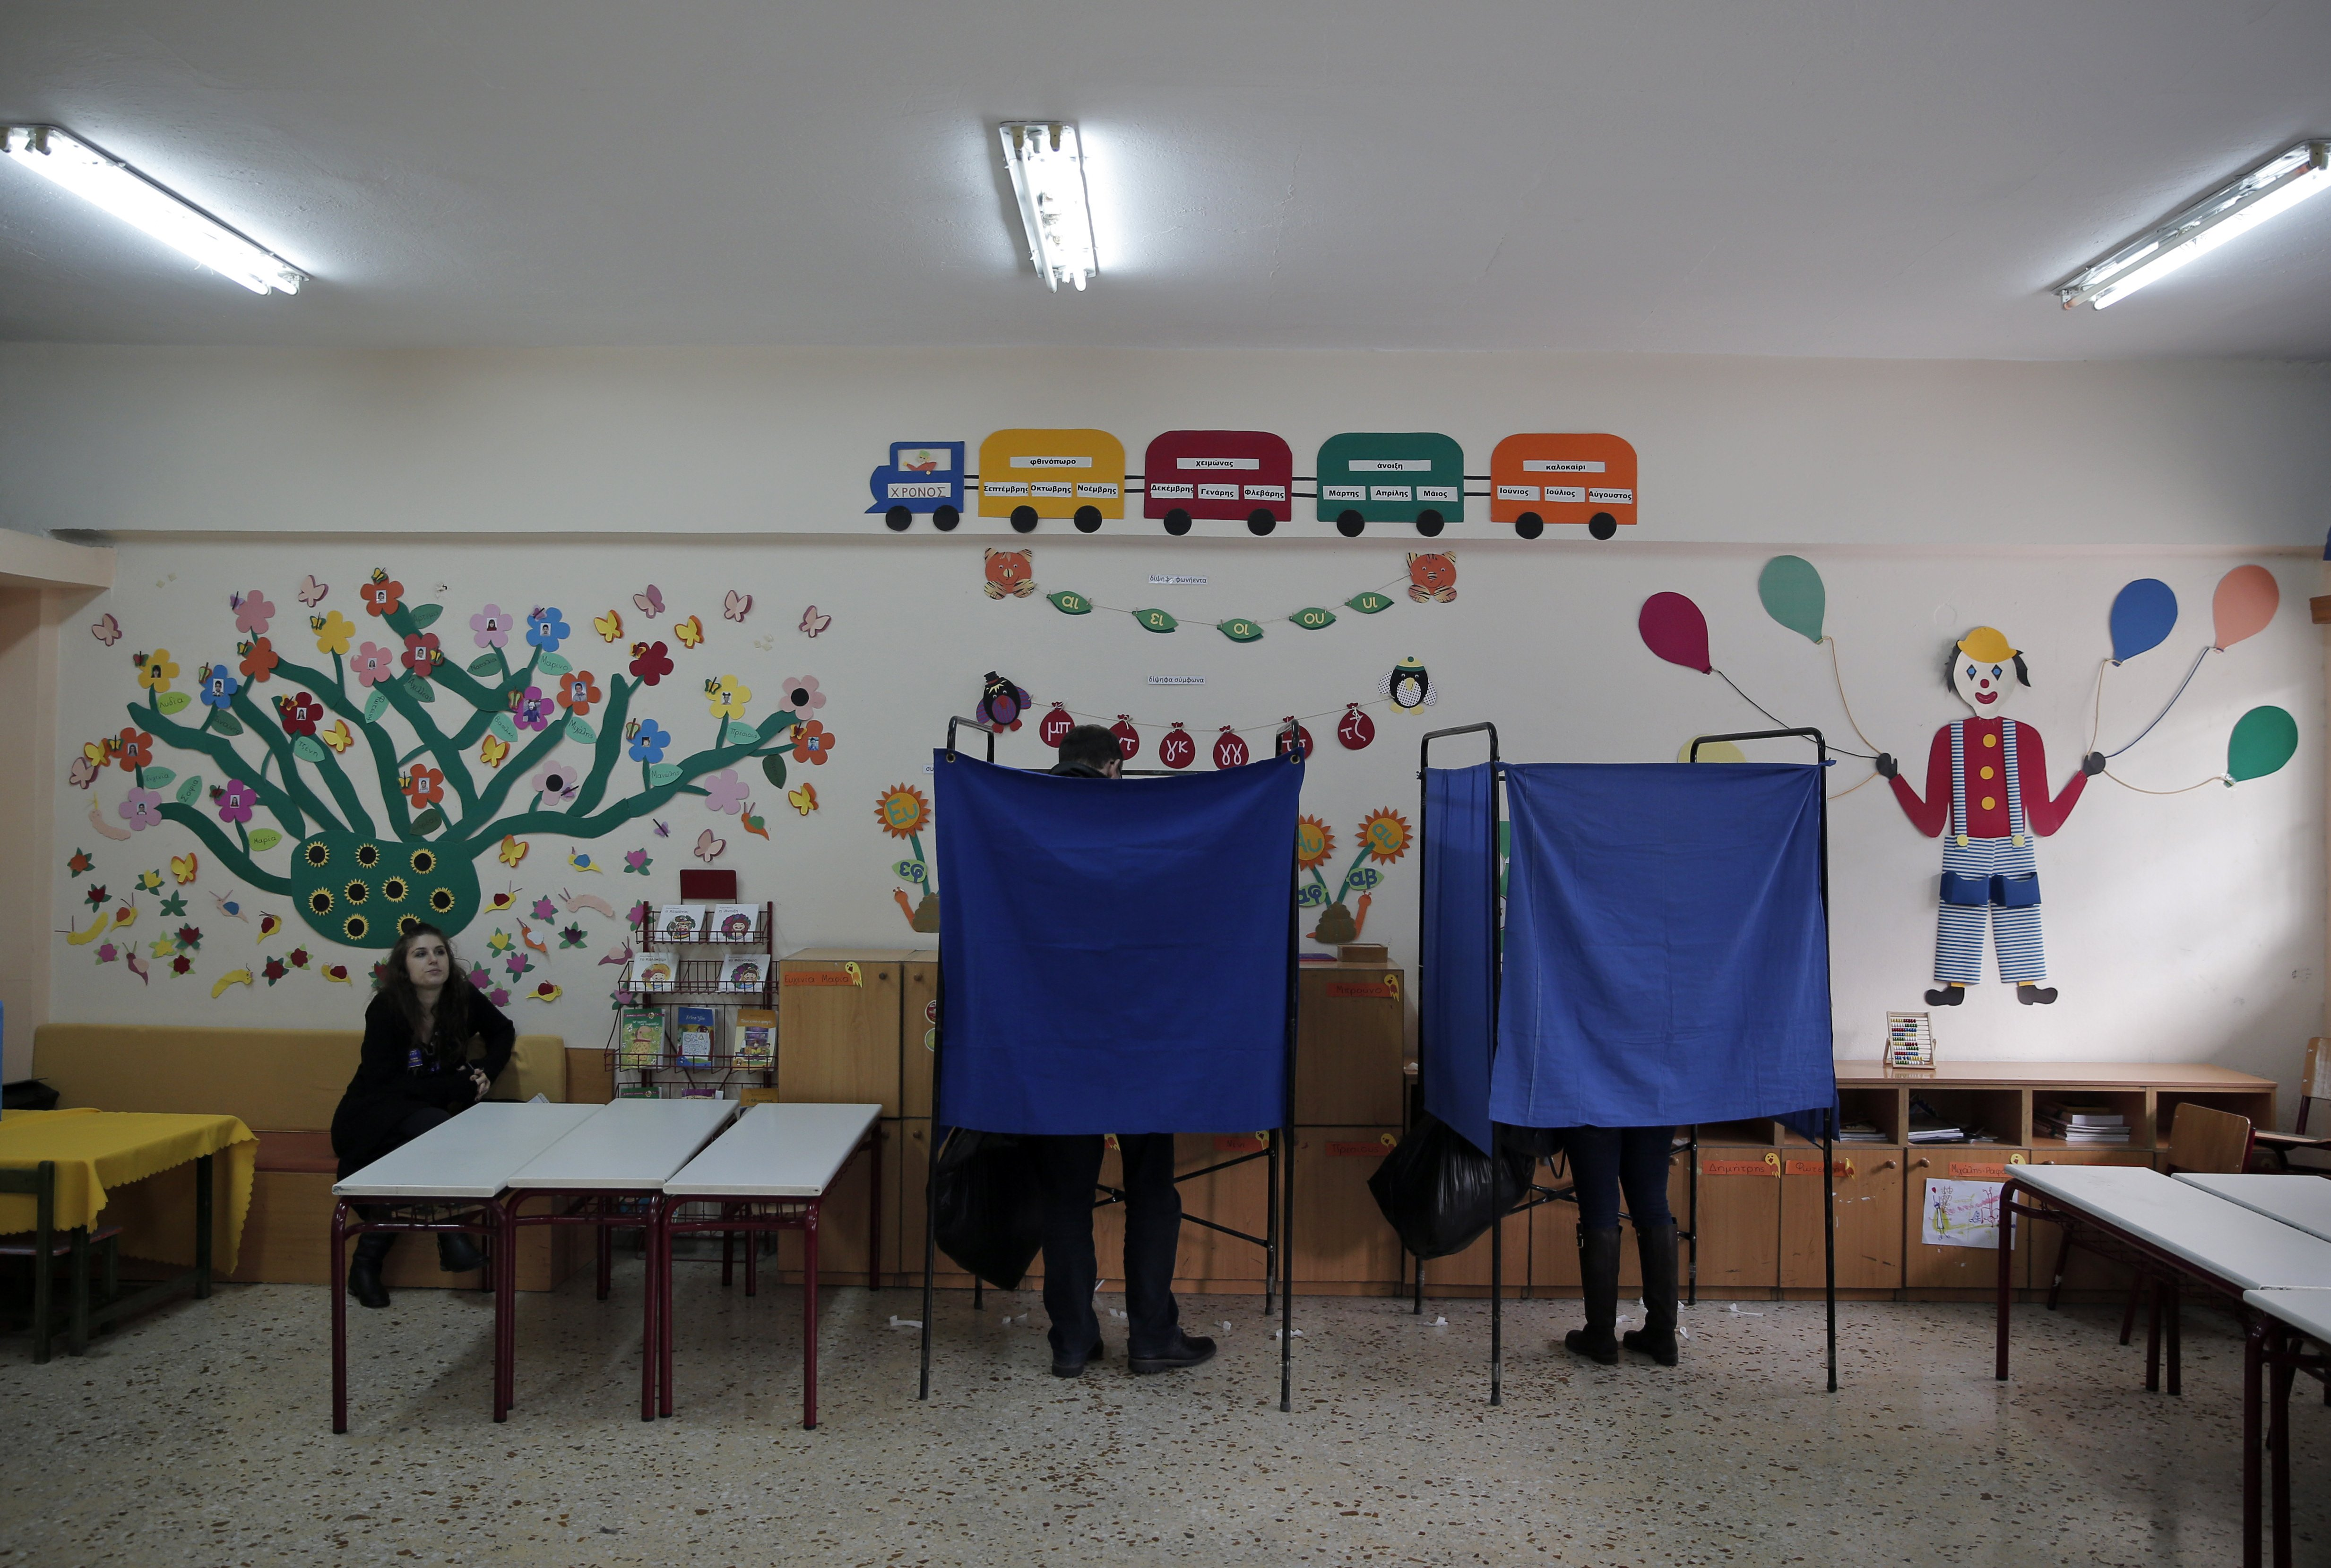 People cast their ballots in booths at a polling station in an Athens school on Jan. 25, 2015.